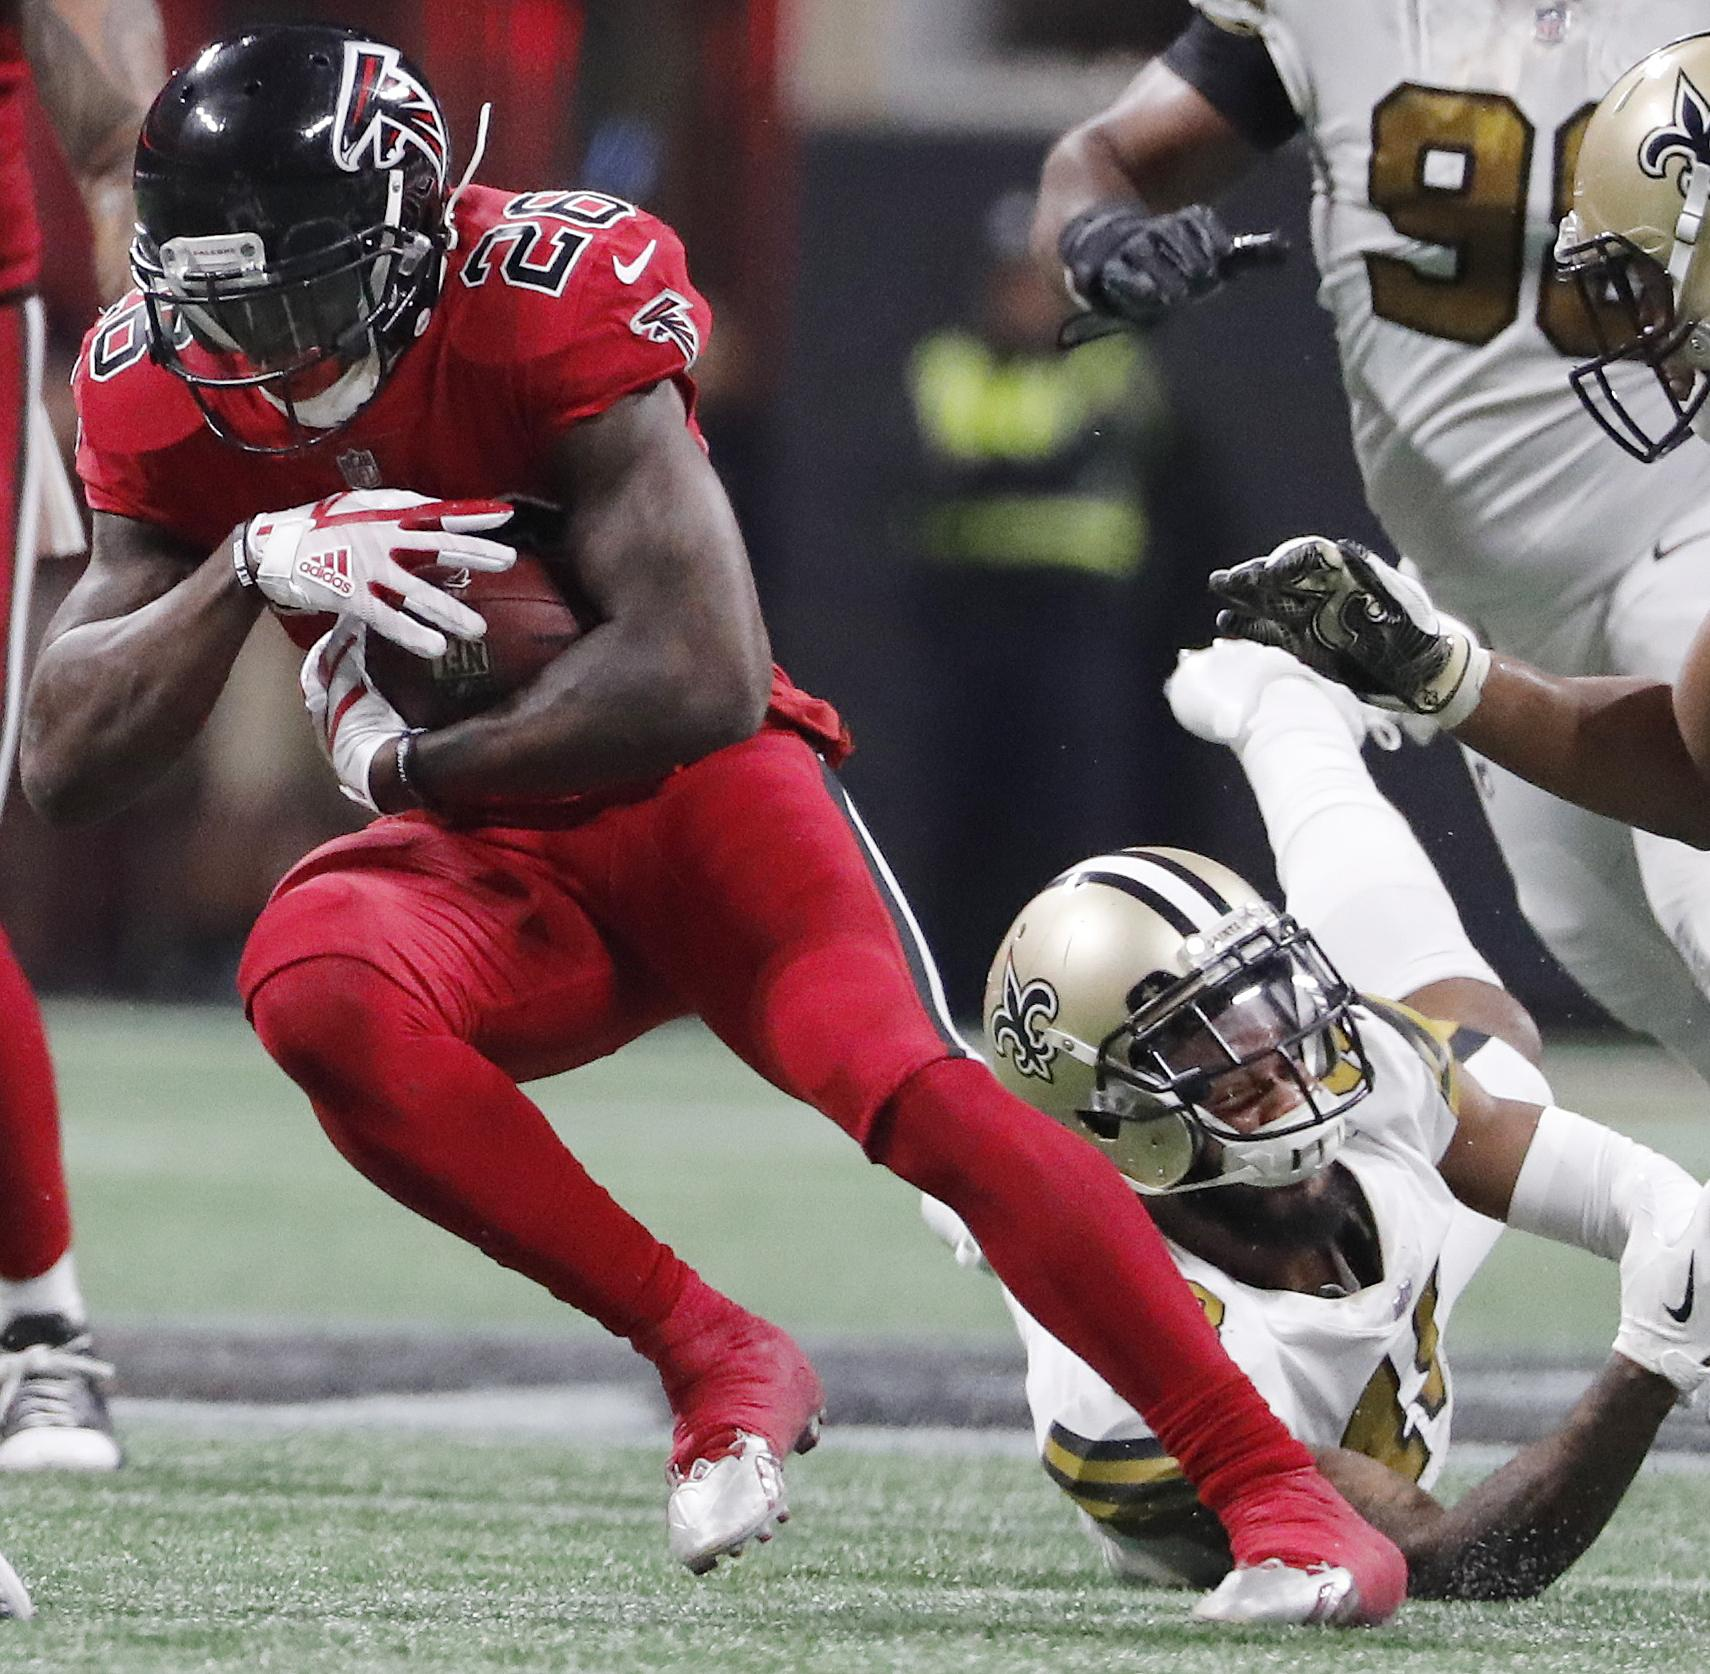 Saints_falcons_football_33223